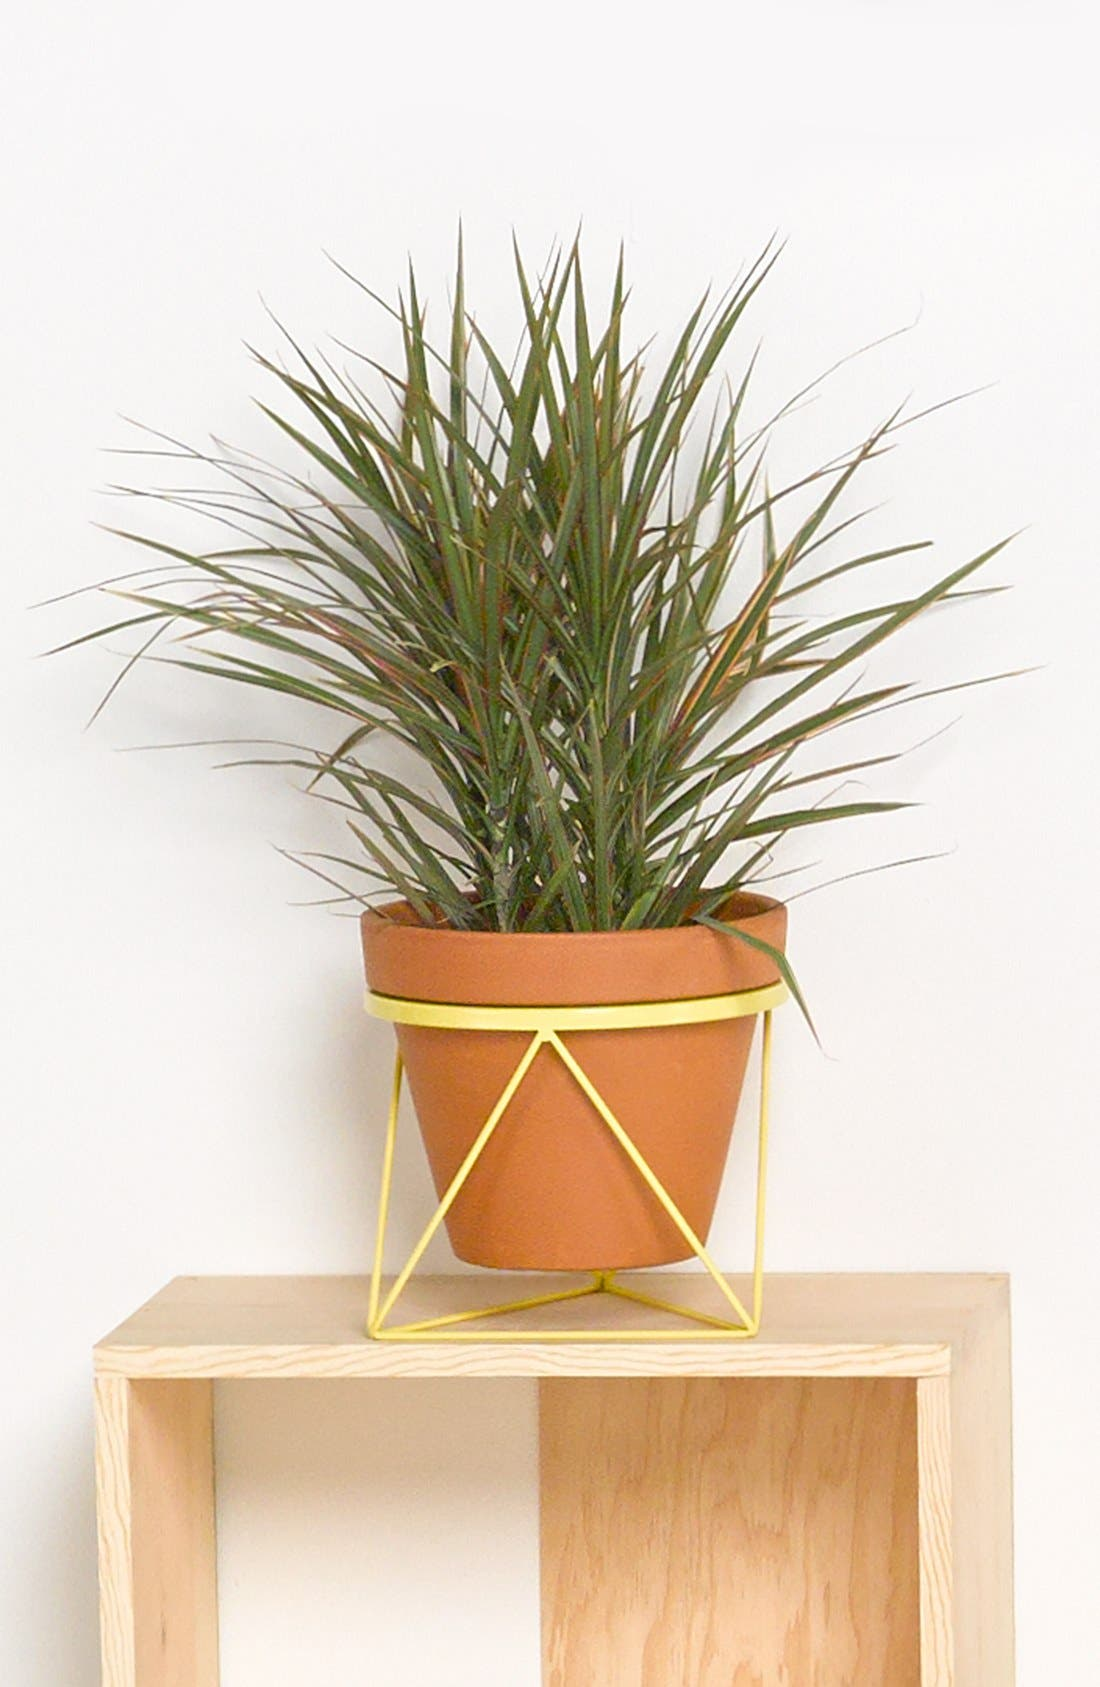 Alternate Image 1 Selected - Eric Trine Octahedron Ring Planter